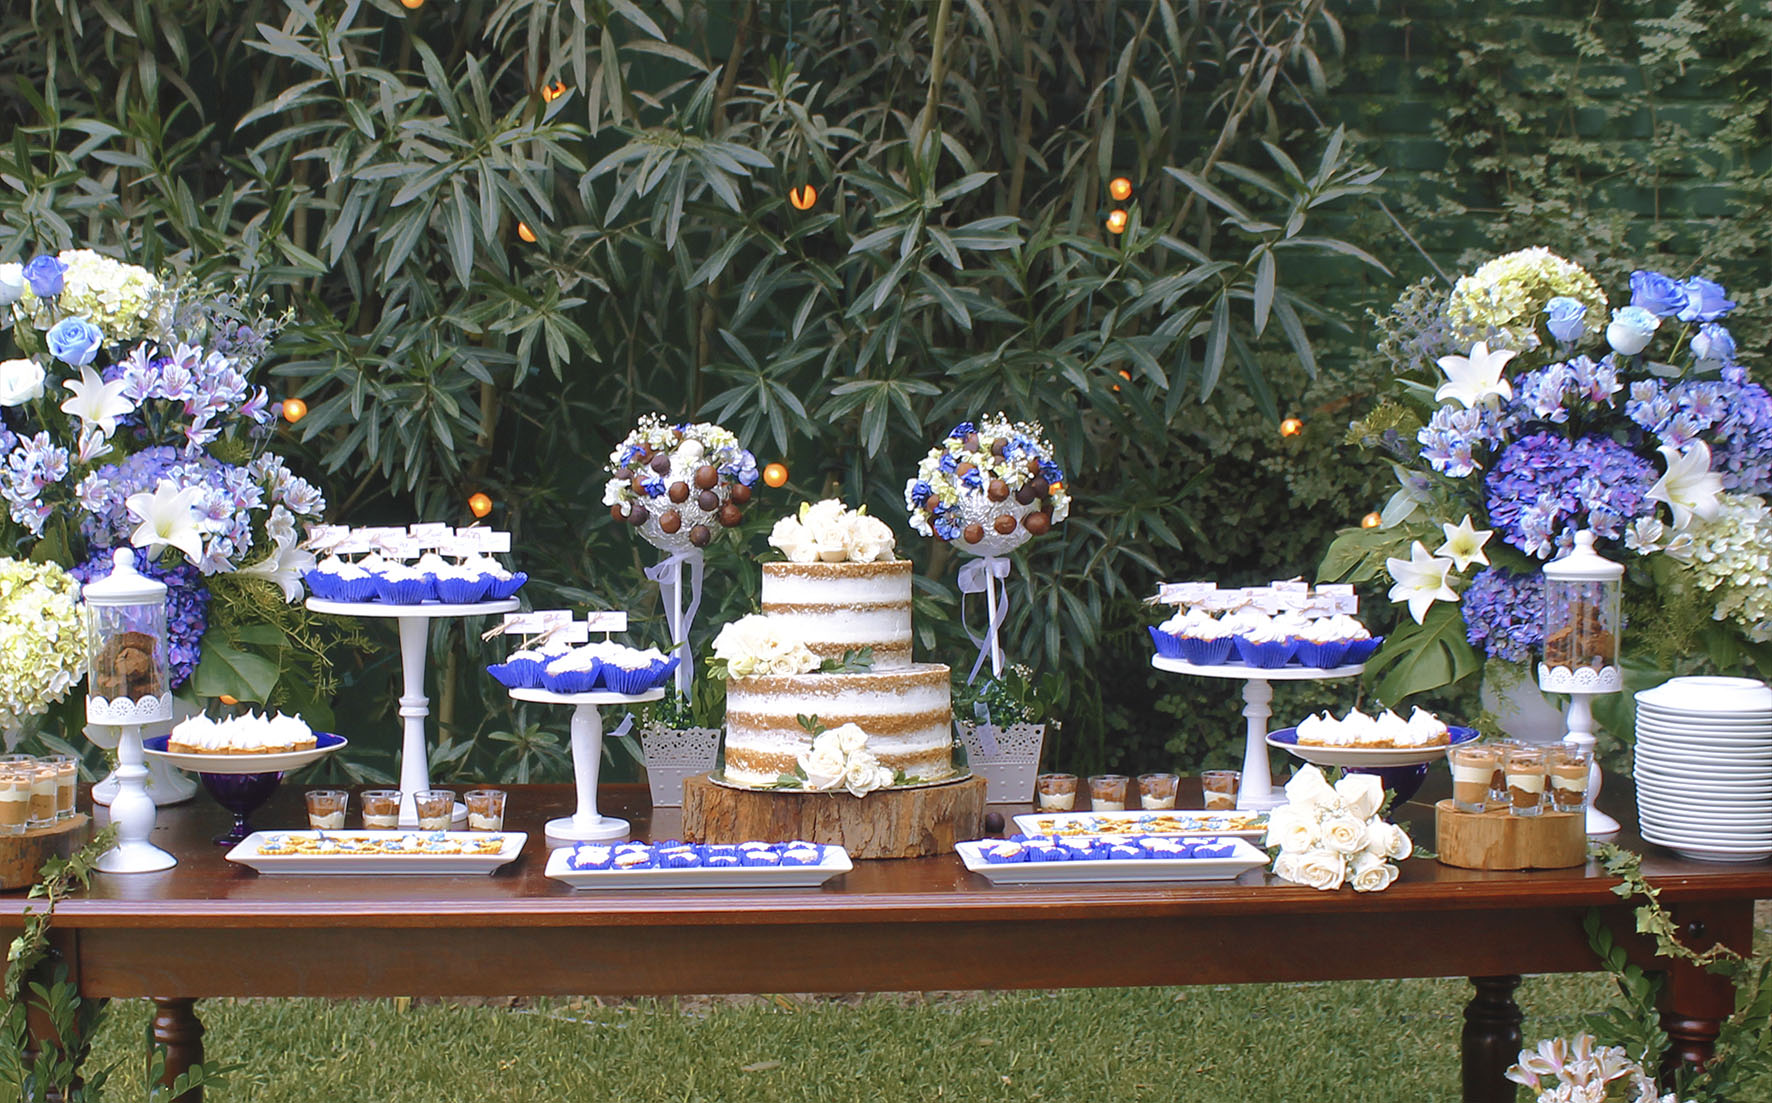 decoration with dessert table